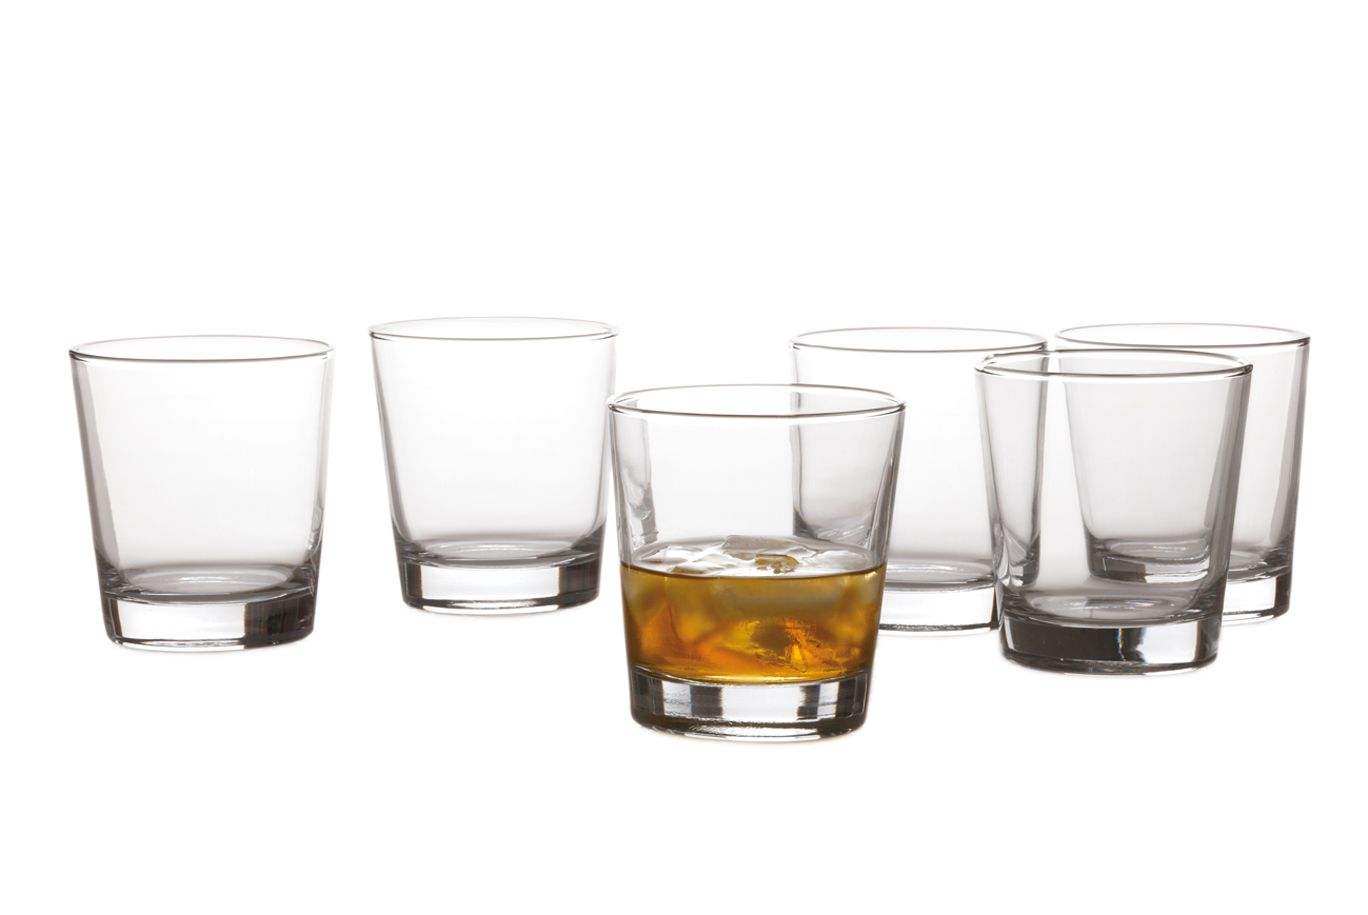 Cuvee tumbler glass, set of 6